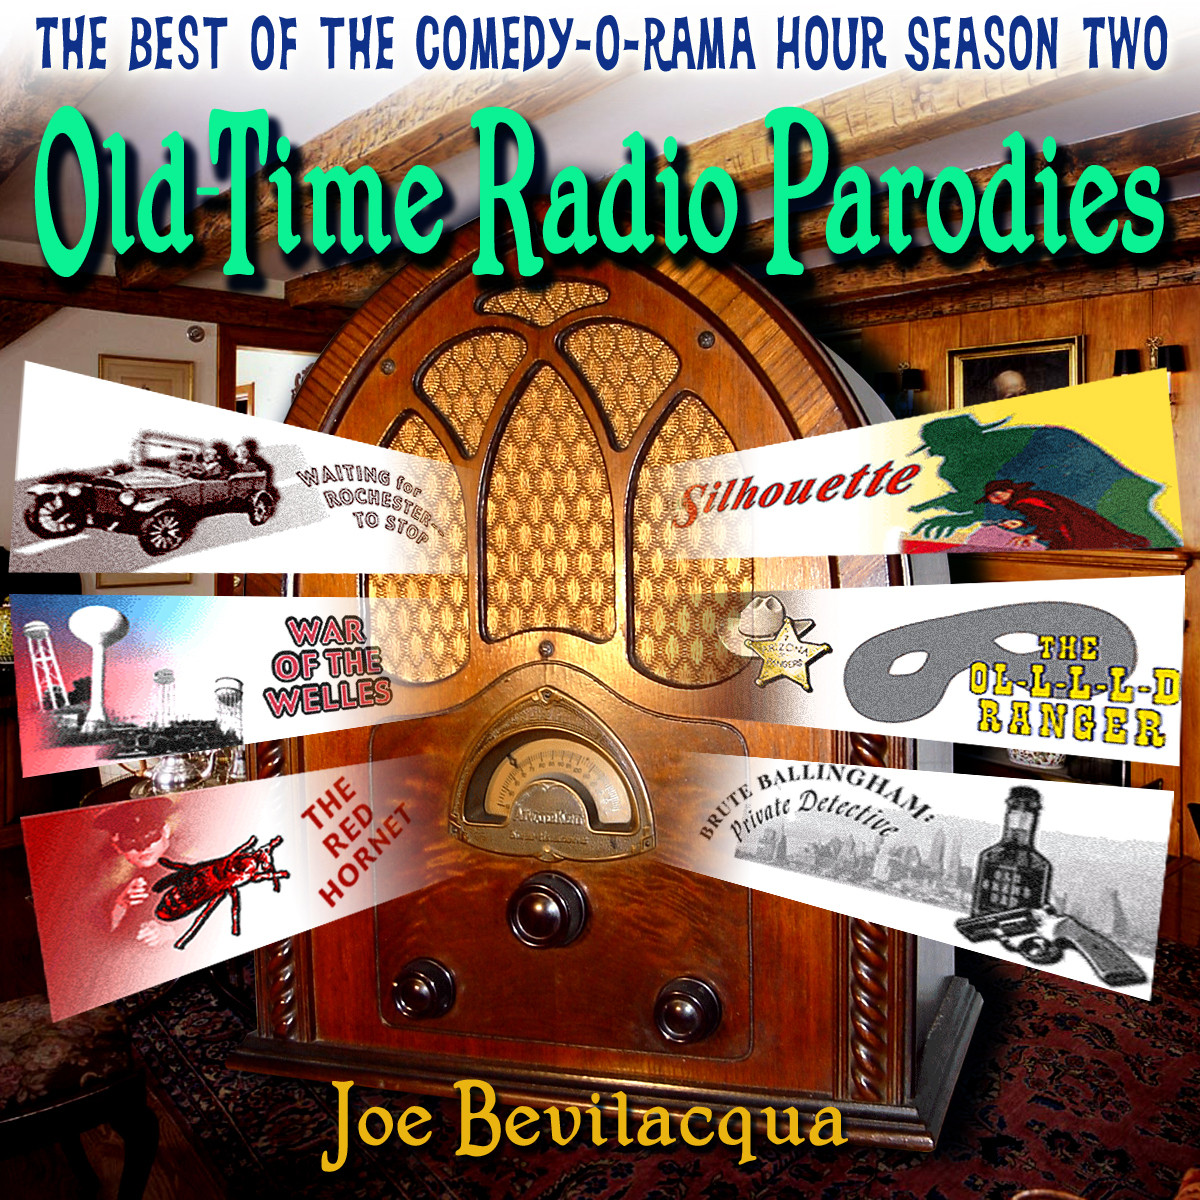 Printable Old-Time Radio Parodies: The Best of the Comedy-O-Rama Hour Season Two Audiobook Cover Art